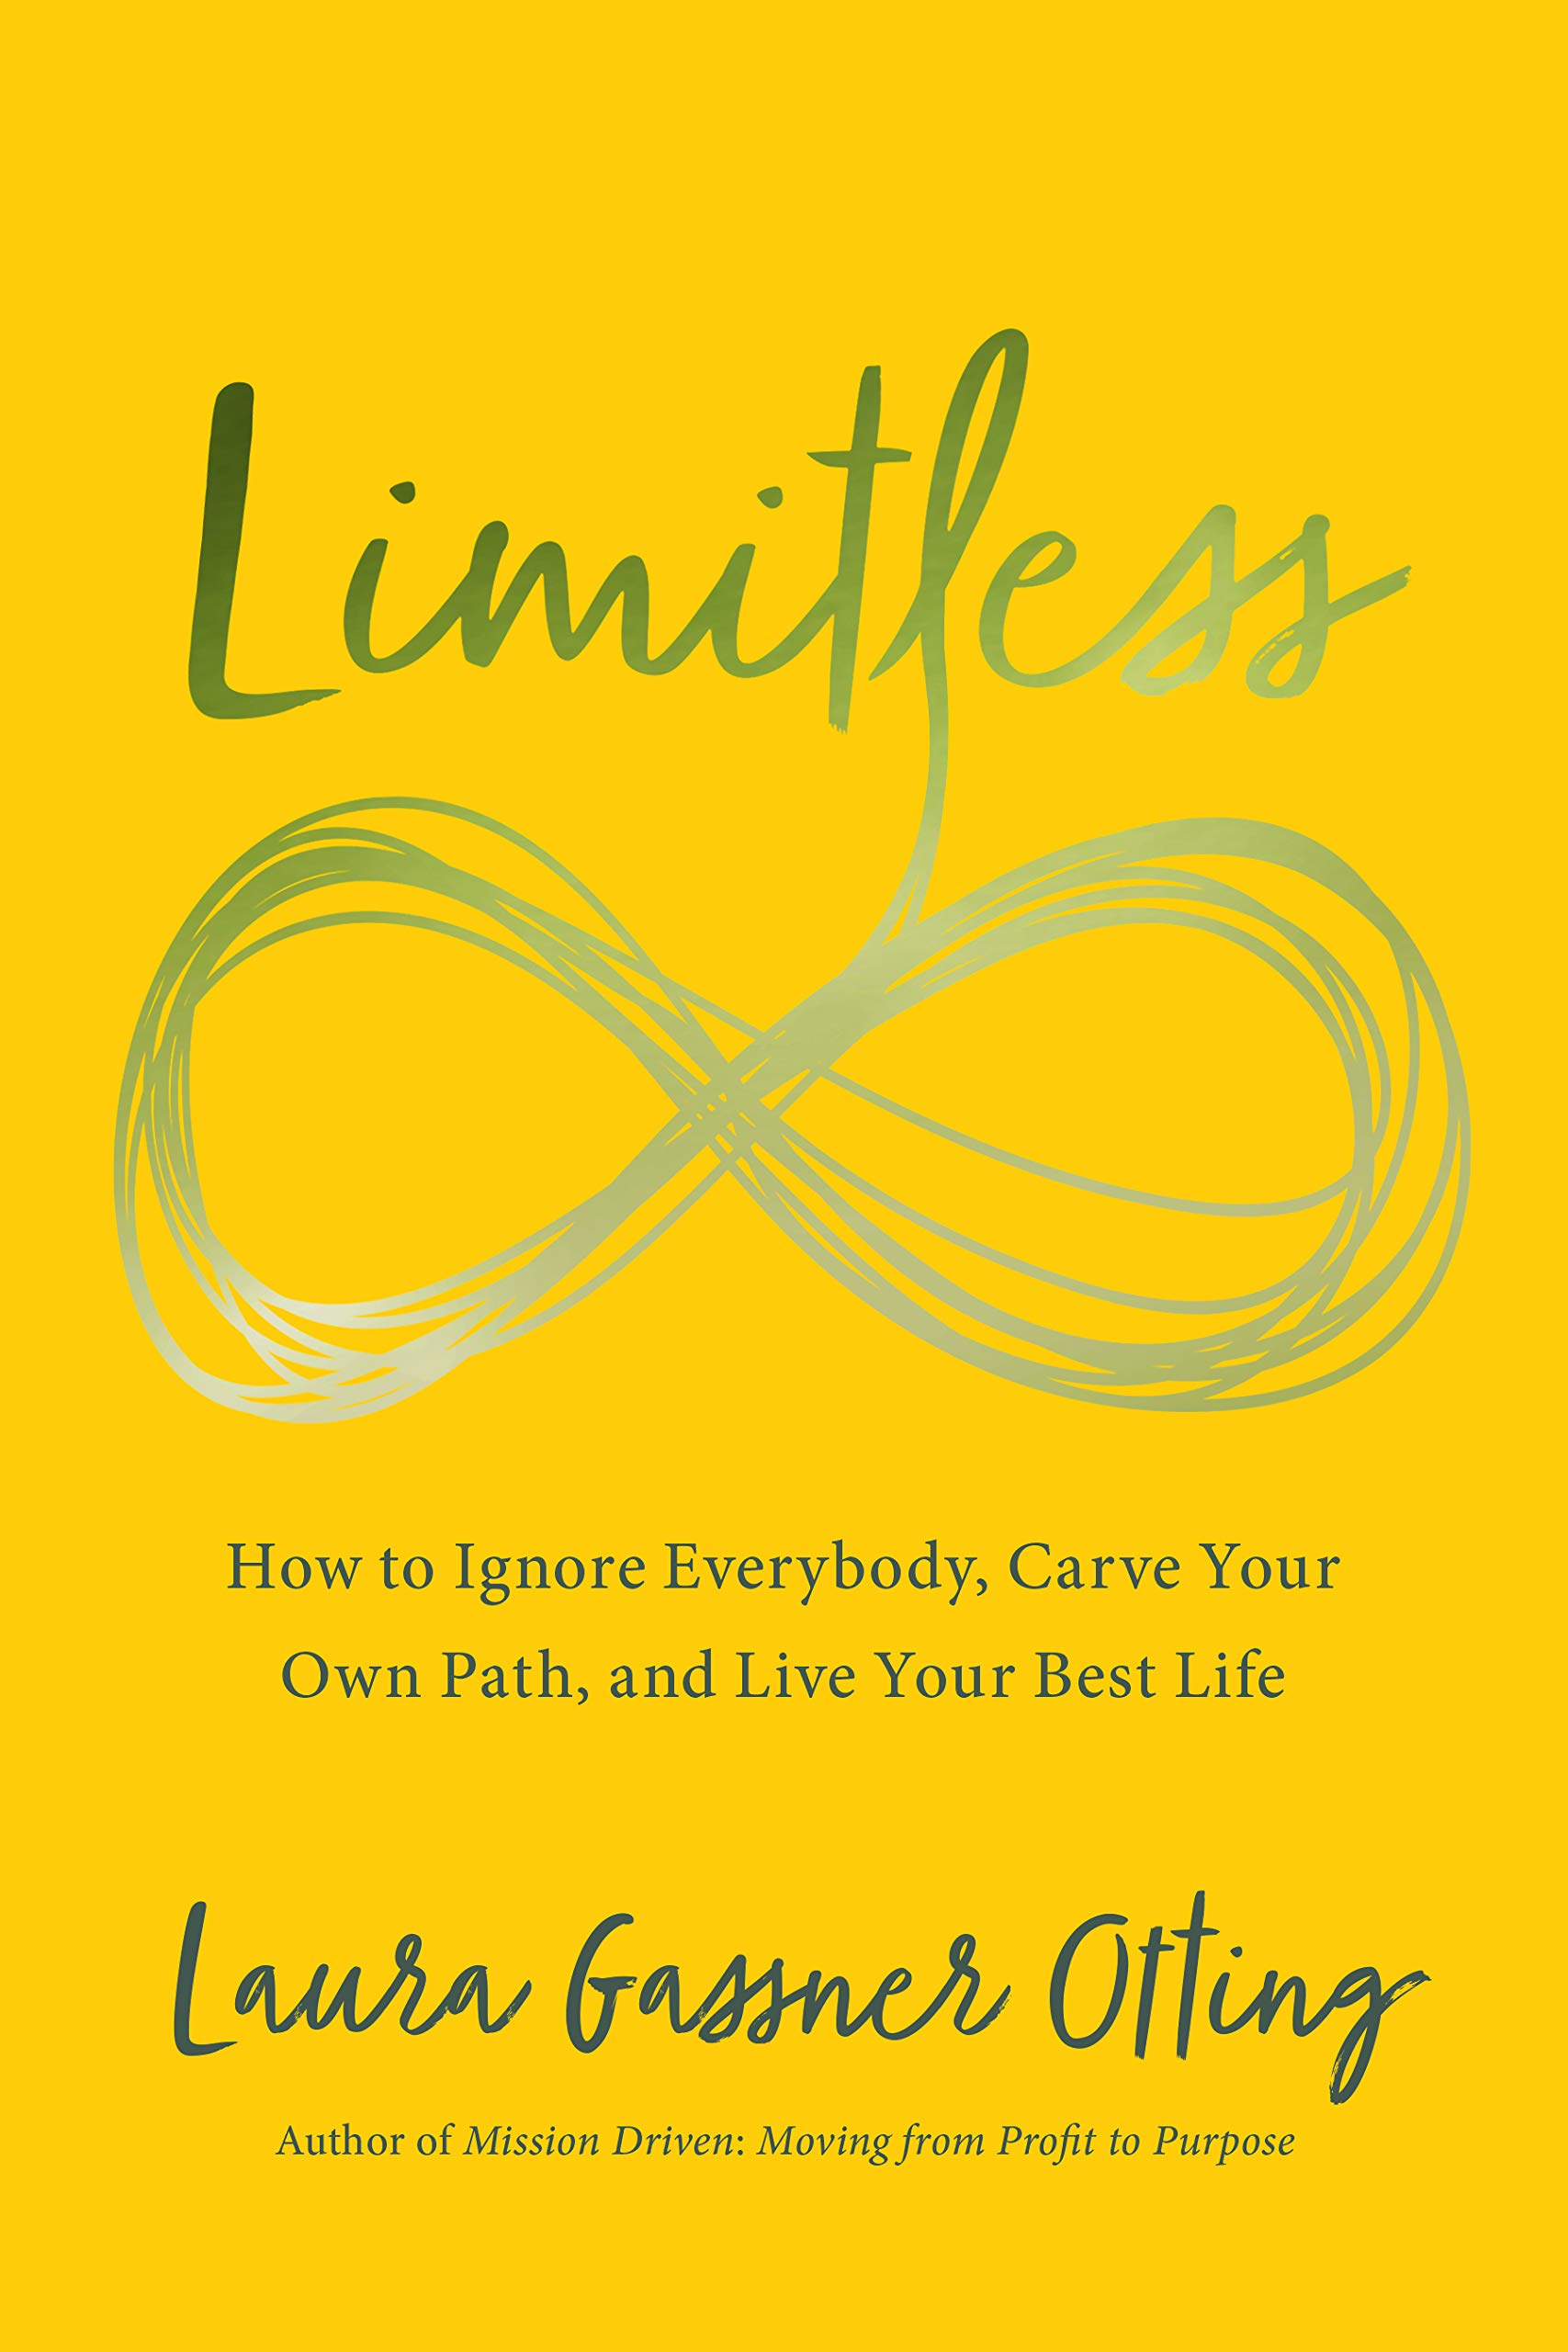 7 mejores libros de negocios- Limitless: How to Ignore Everybody, Carve your Own Path, and Live Your Best Life